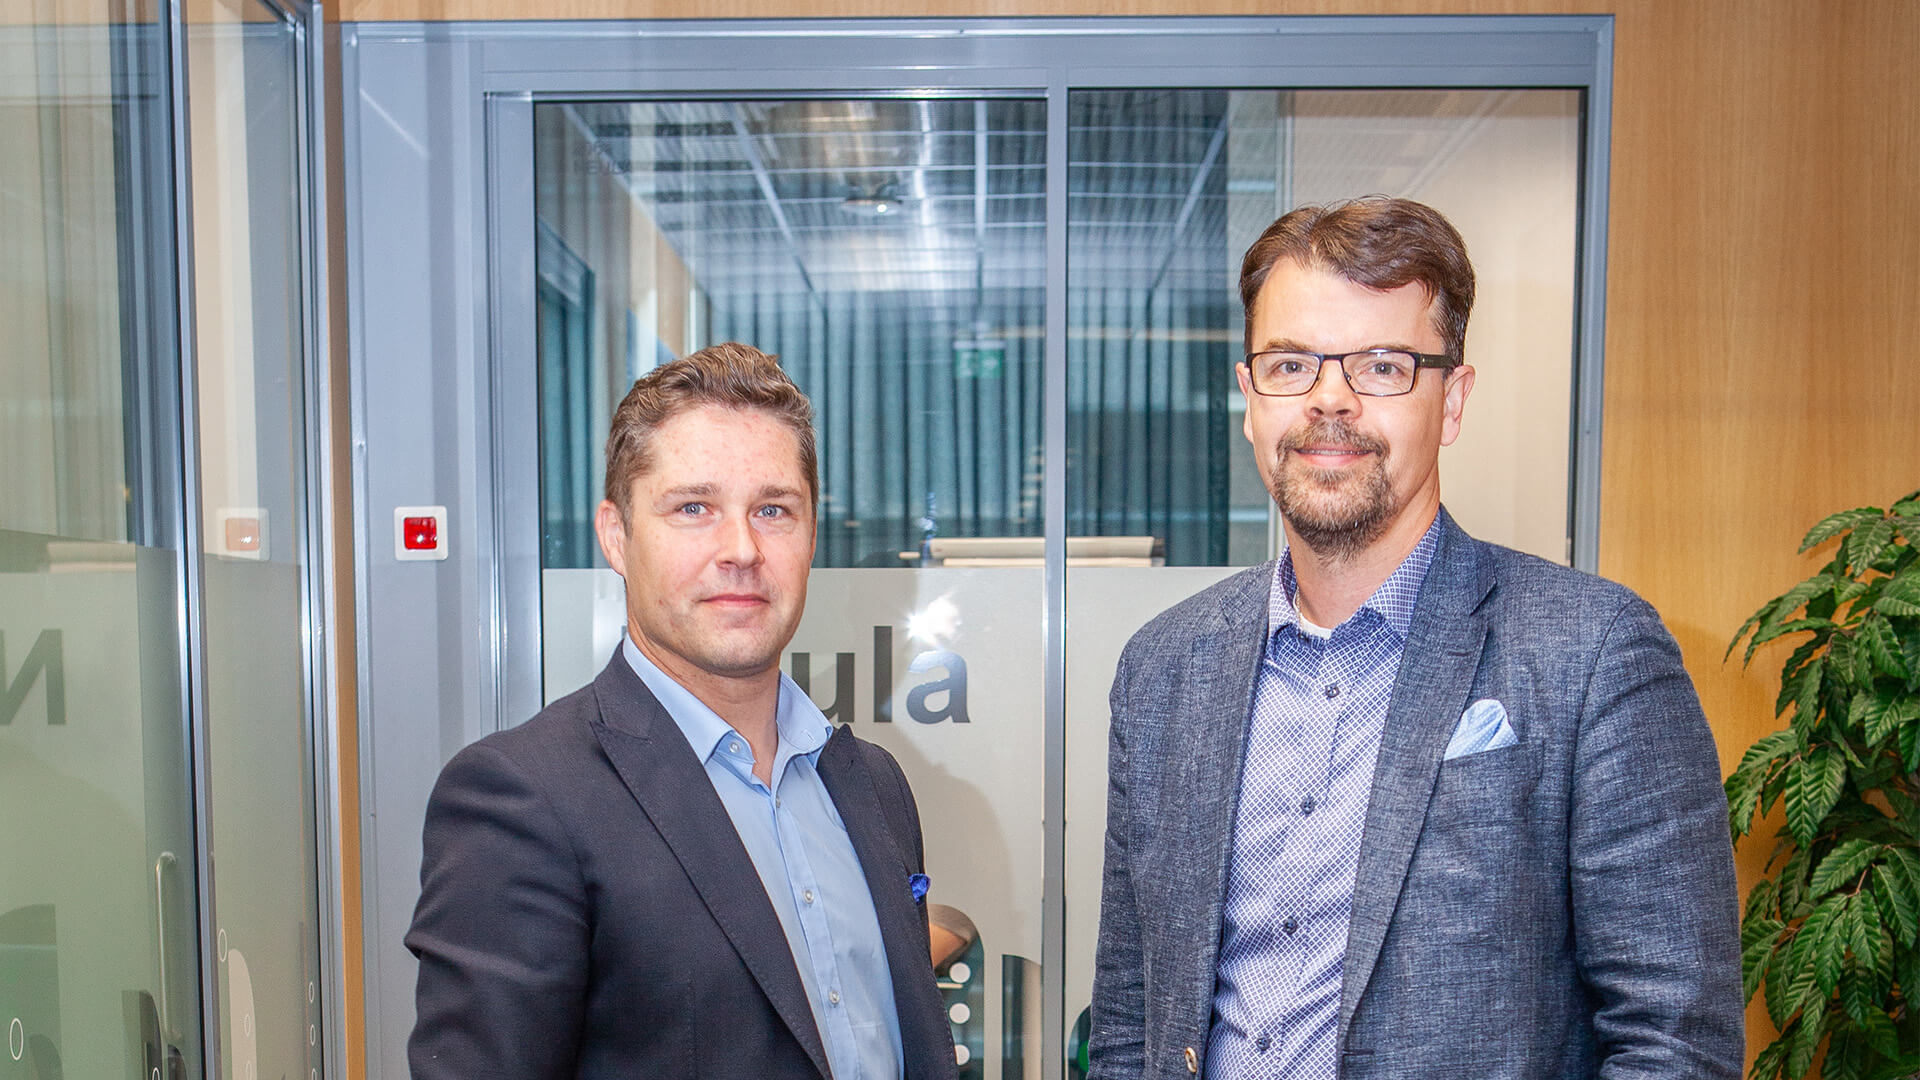 AINS Group and Proxion launch strategic partnership – partners aims to be the leading rail transport expert in Finland